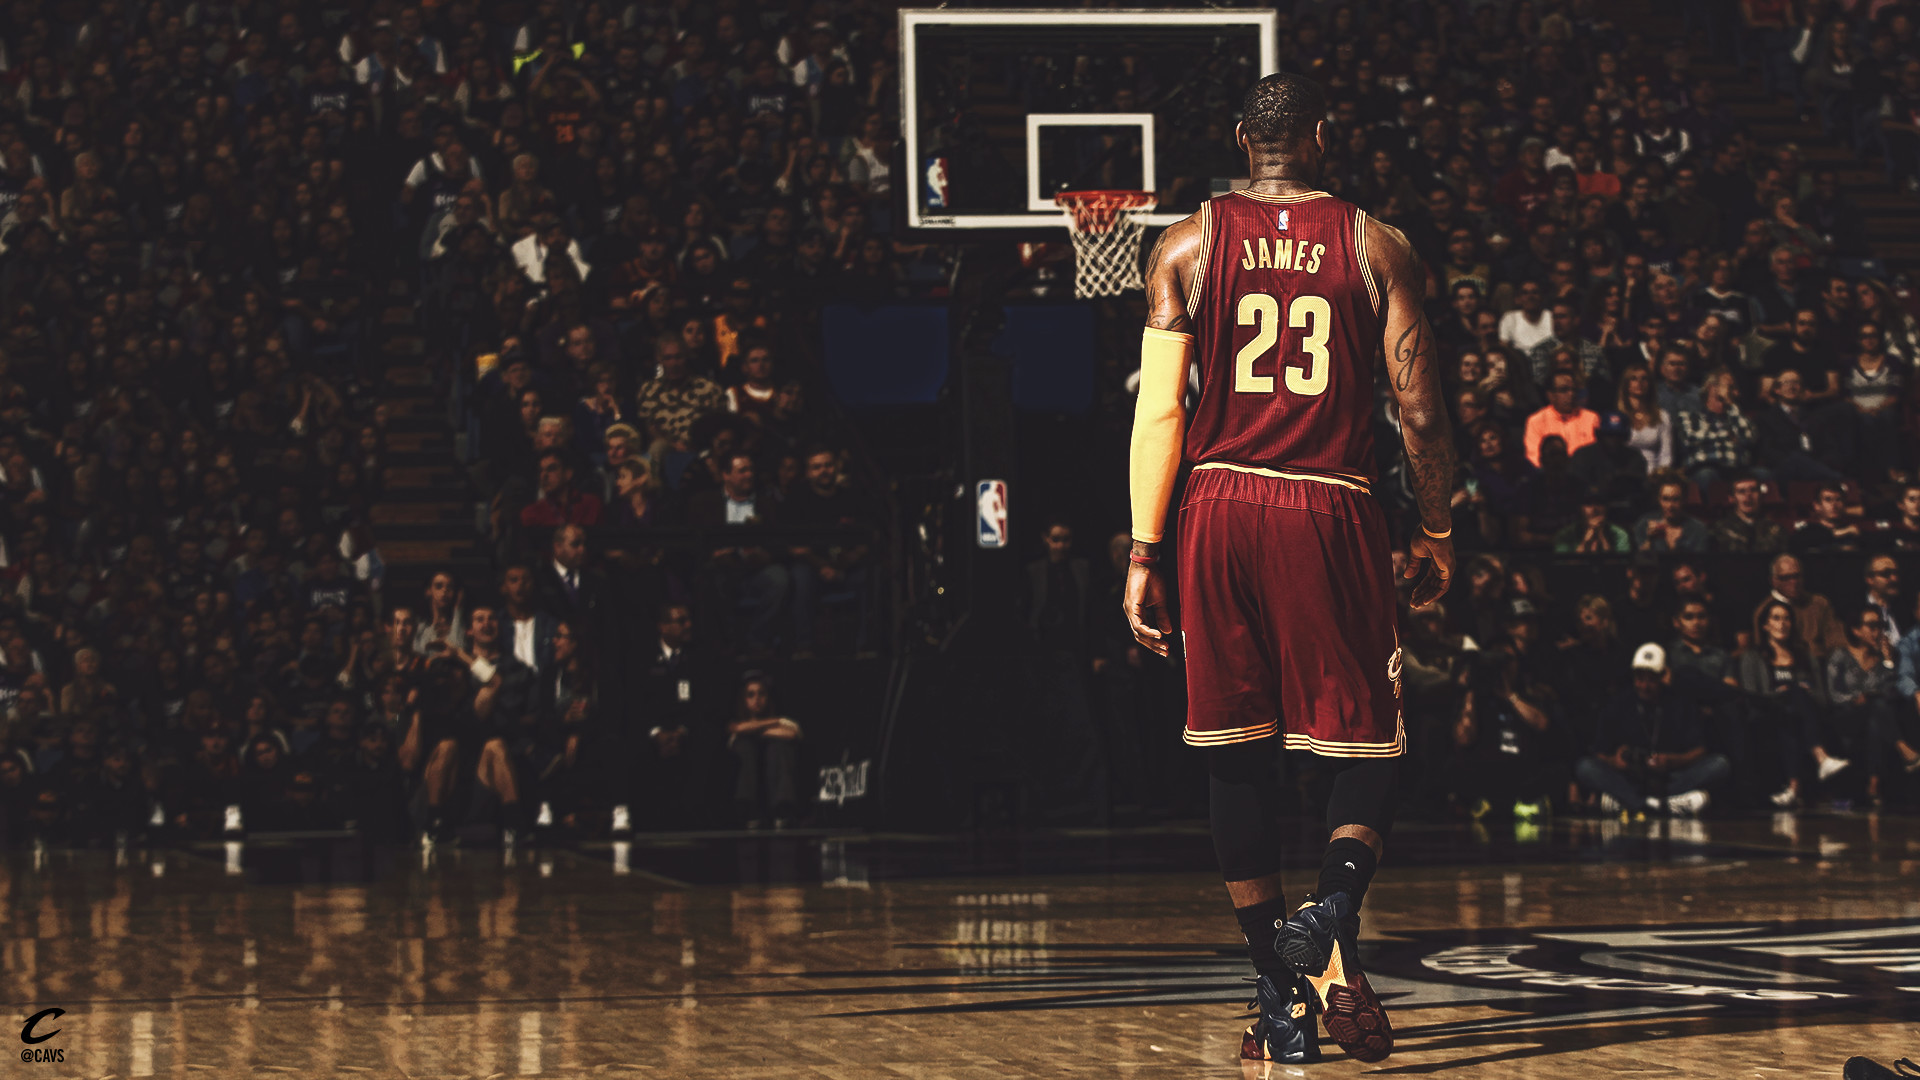 1920x1080 Free NBA wallpapers at HoopsWallpapers.com Newest NBA and ... - HD  Wallpapers